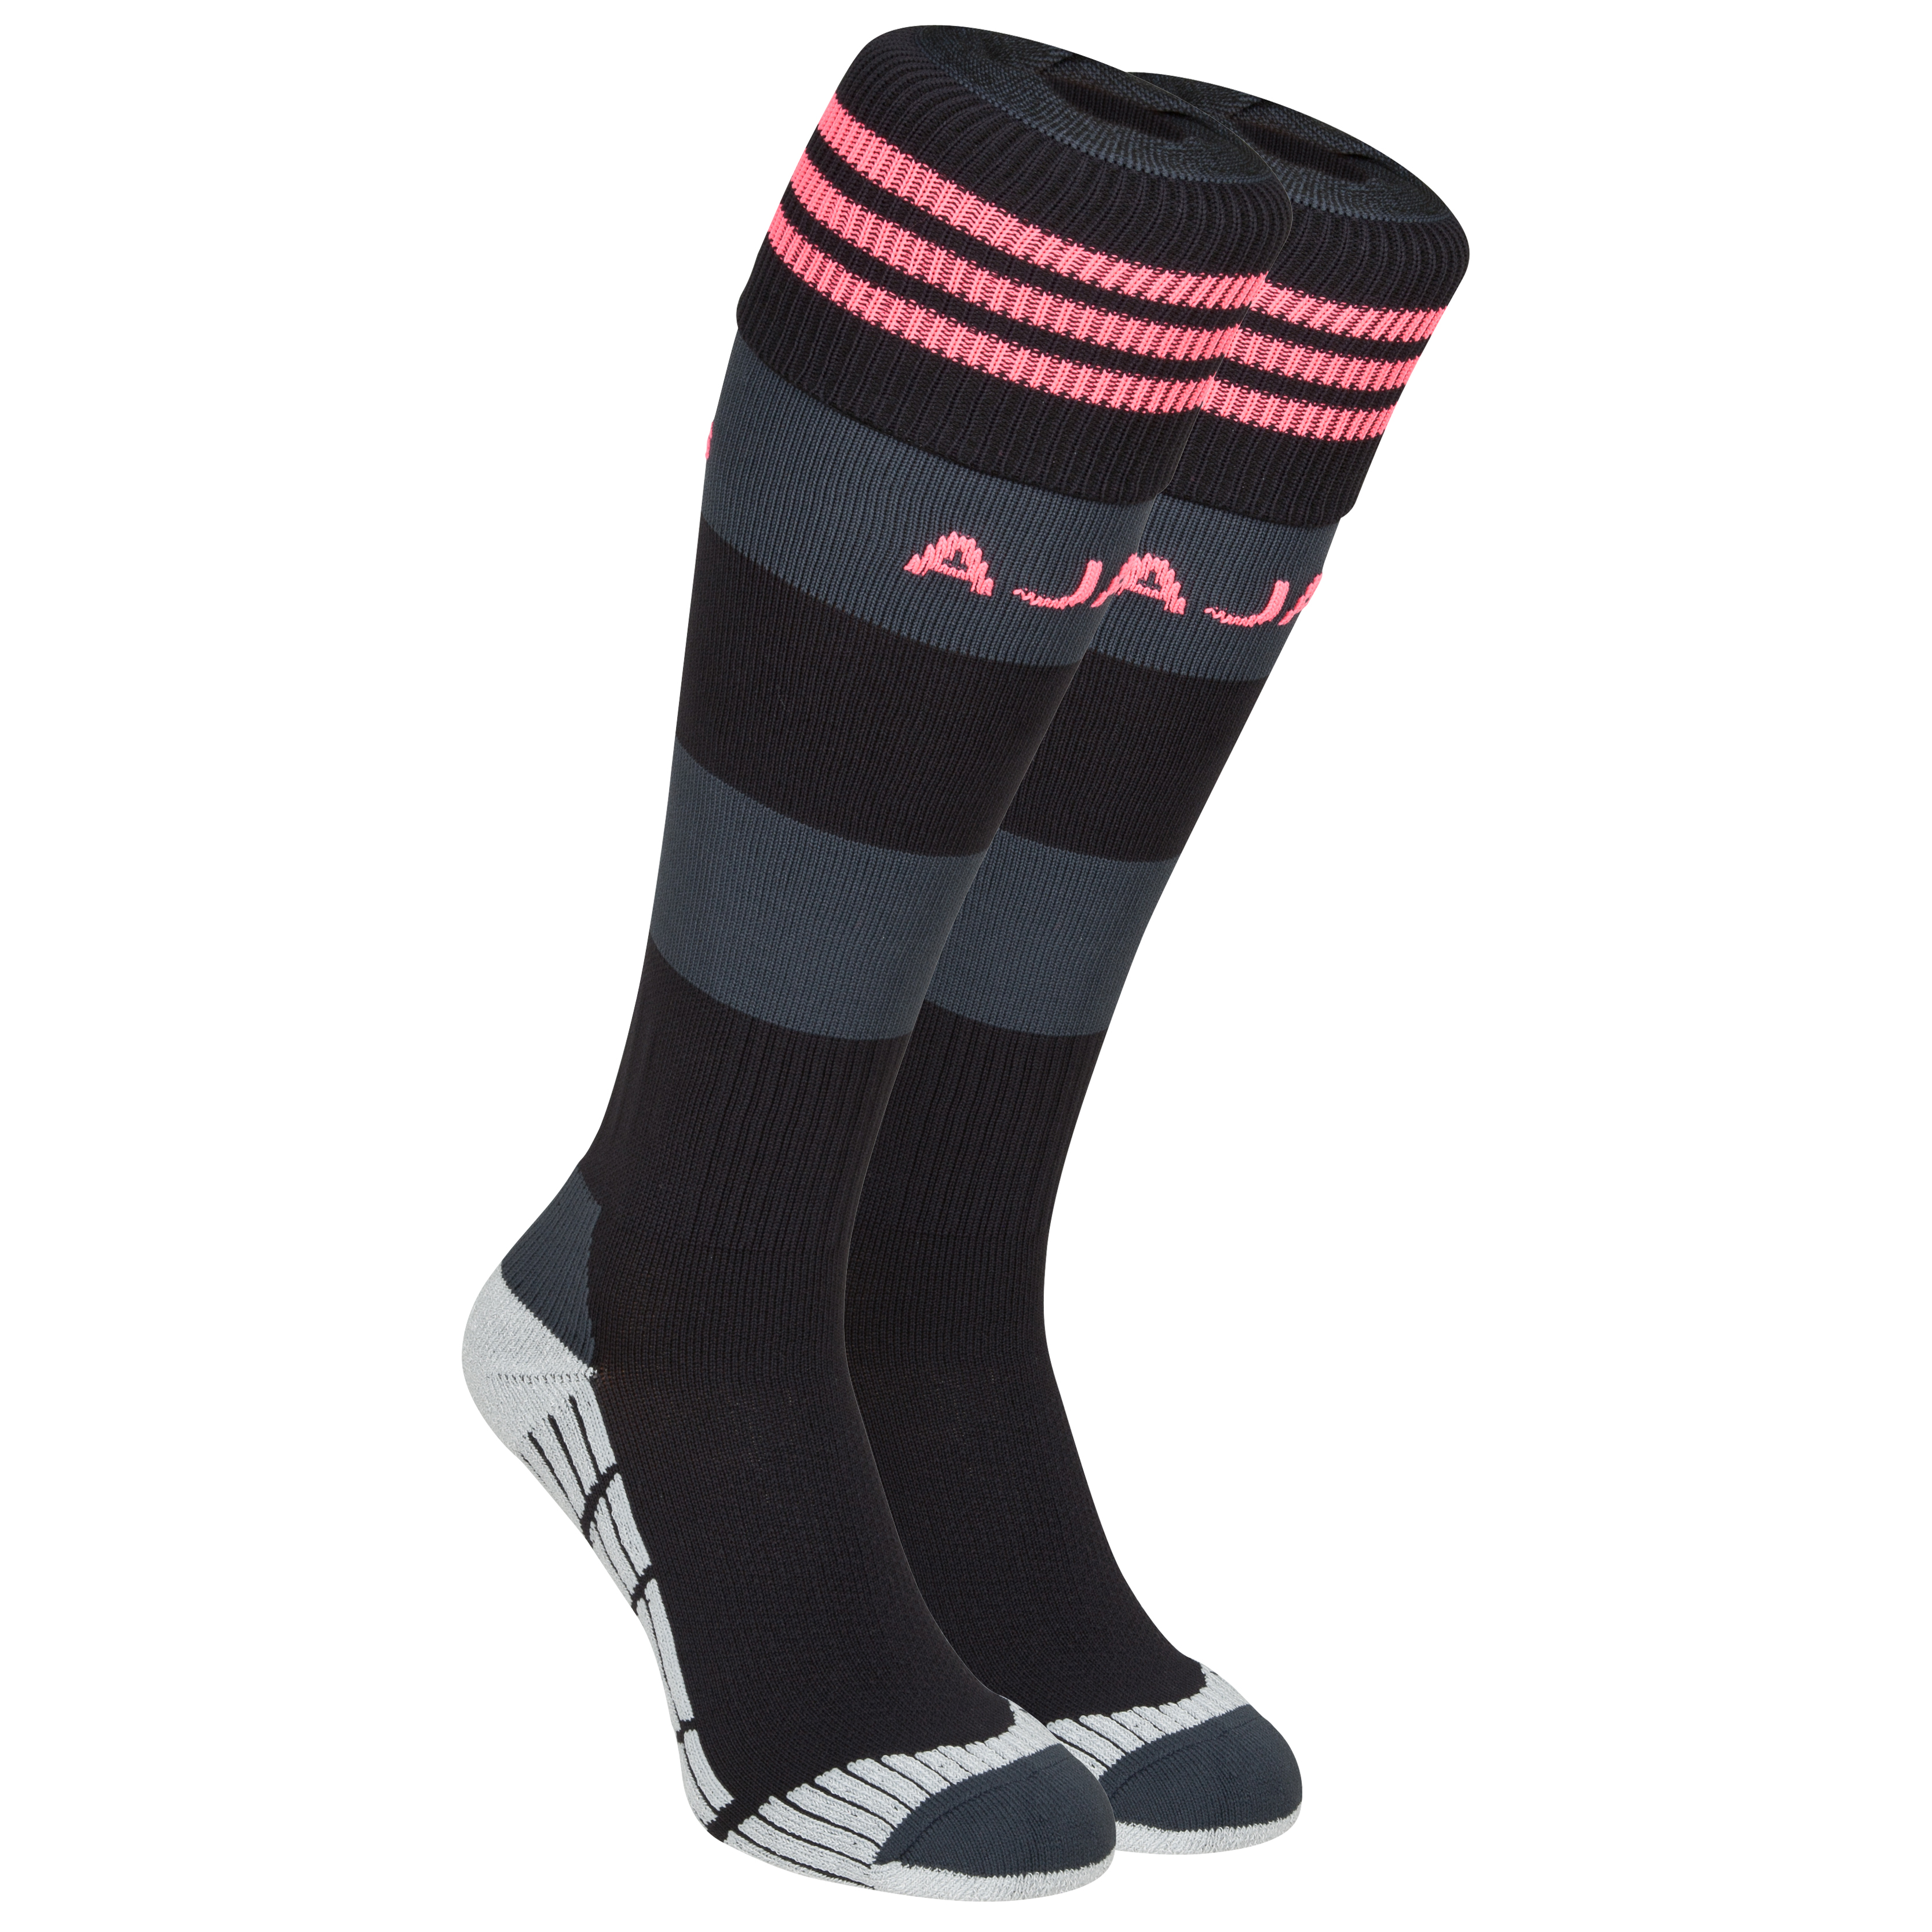 Ajax Ajax Away Socks 2013/14